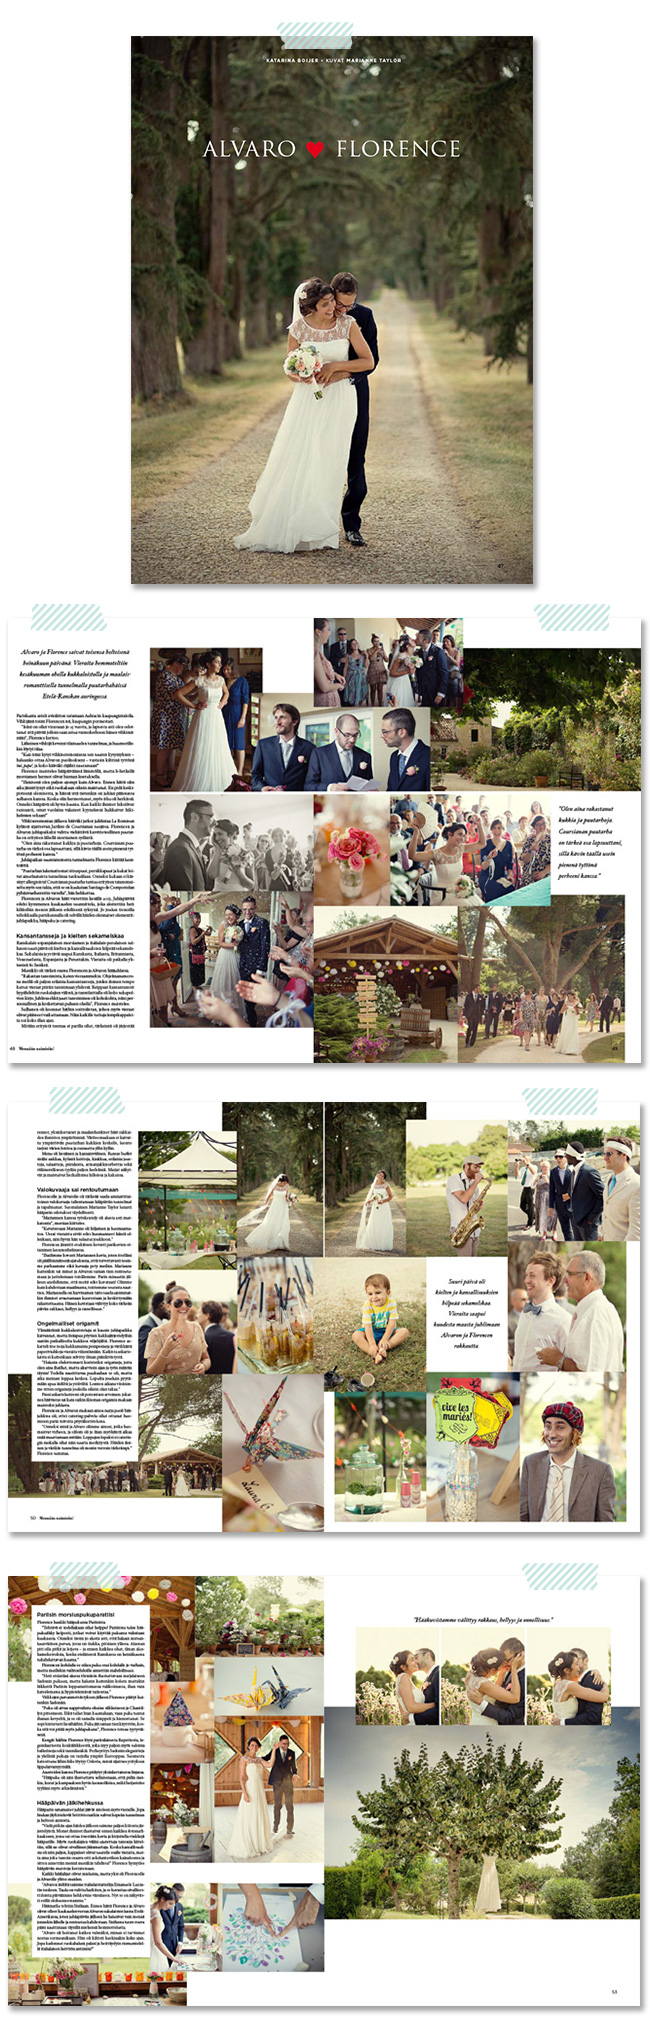 Marianne Taylor Photography wedding in Mennaan Naimisiin magazine in Finland.